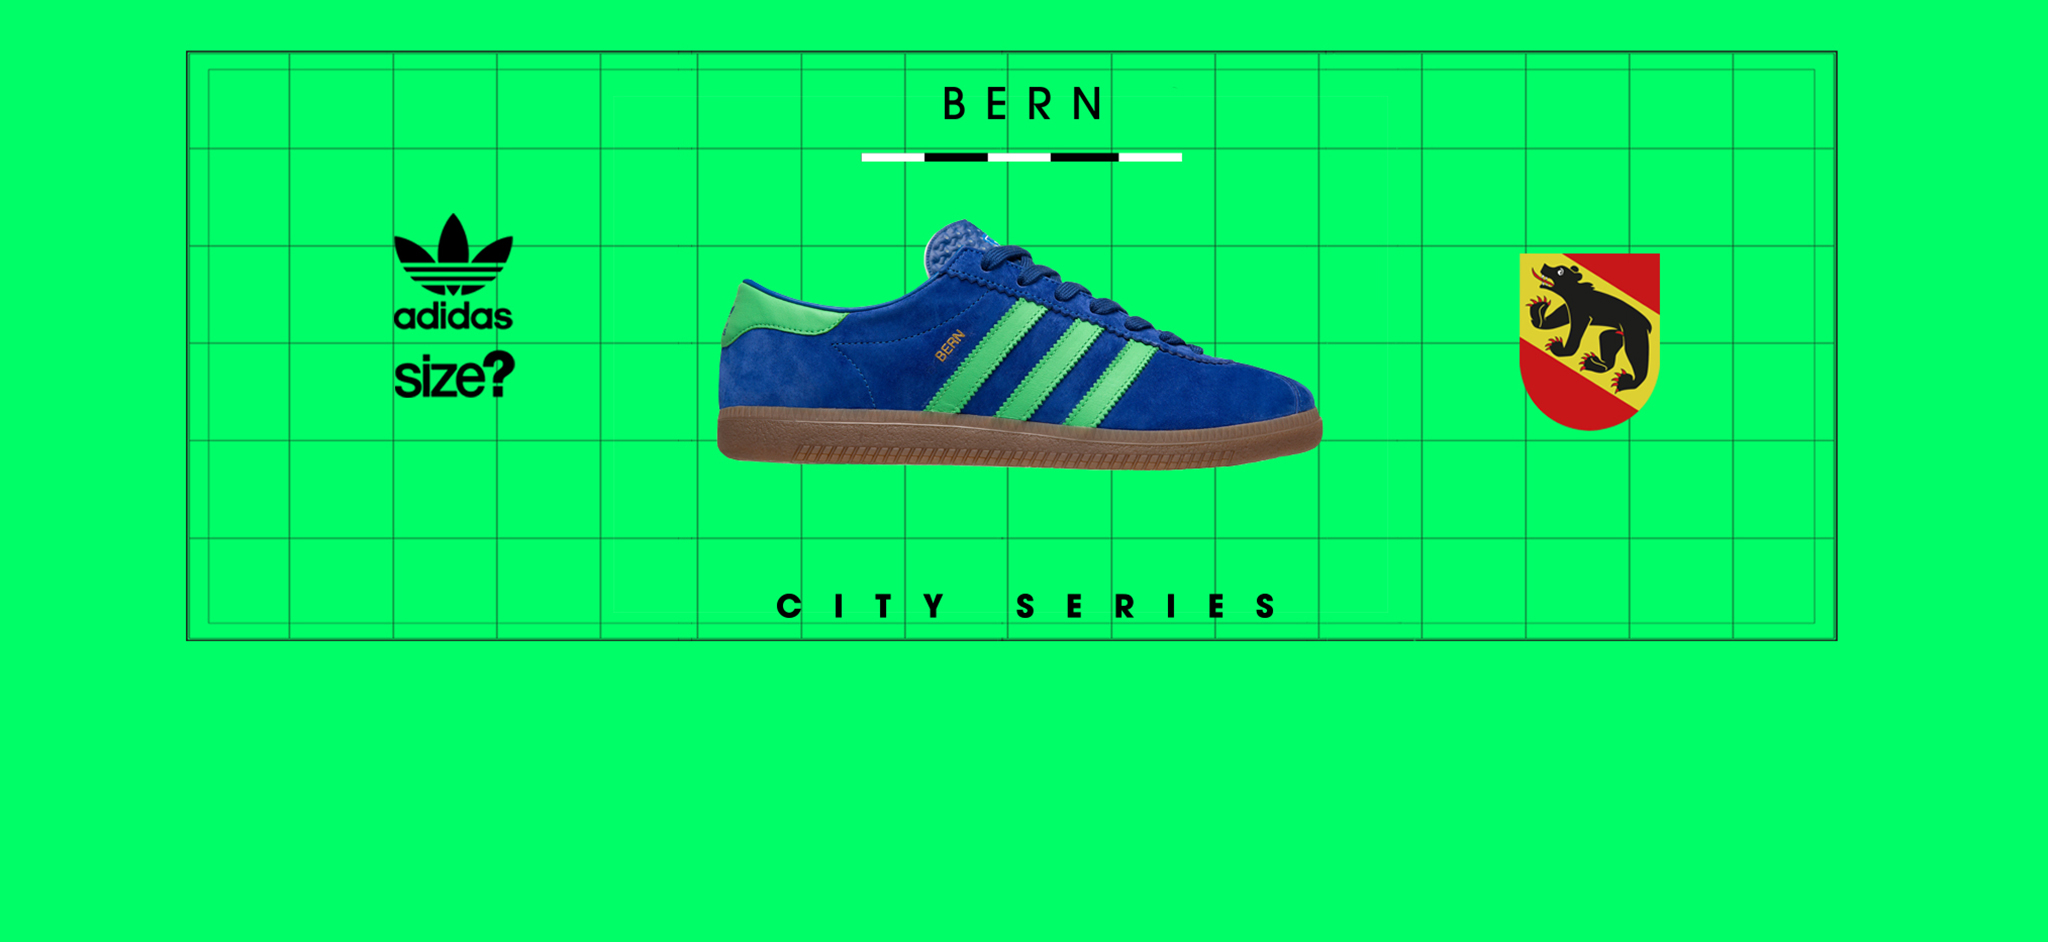 c2c49751a300 adidas Originals Bern  City Series